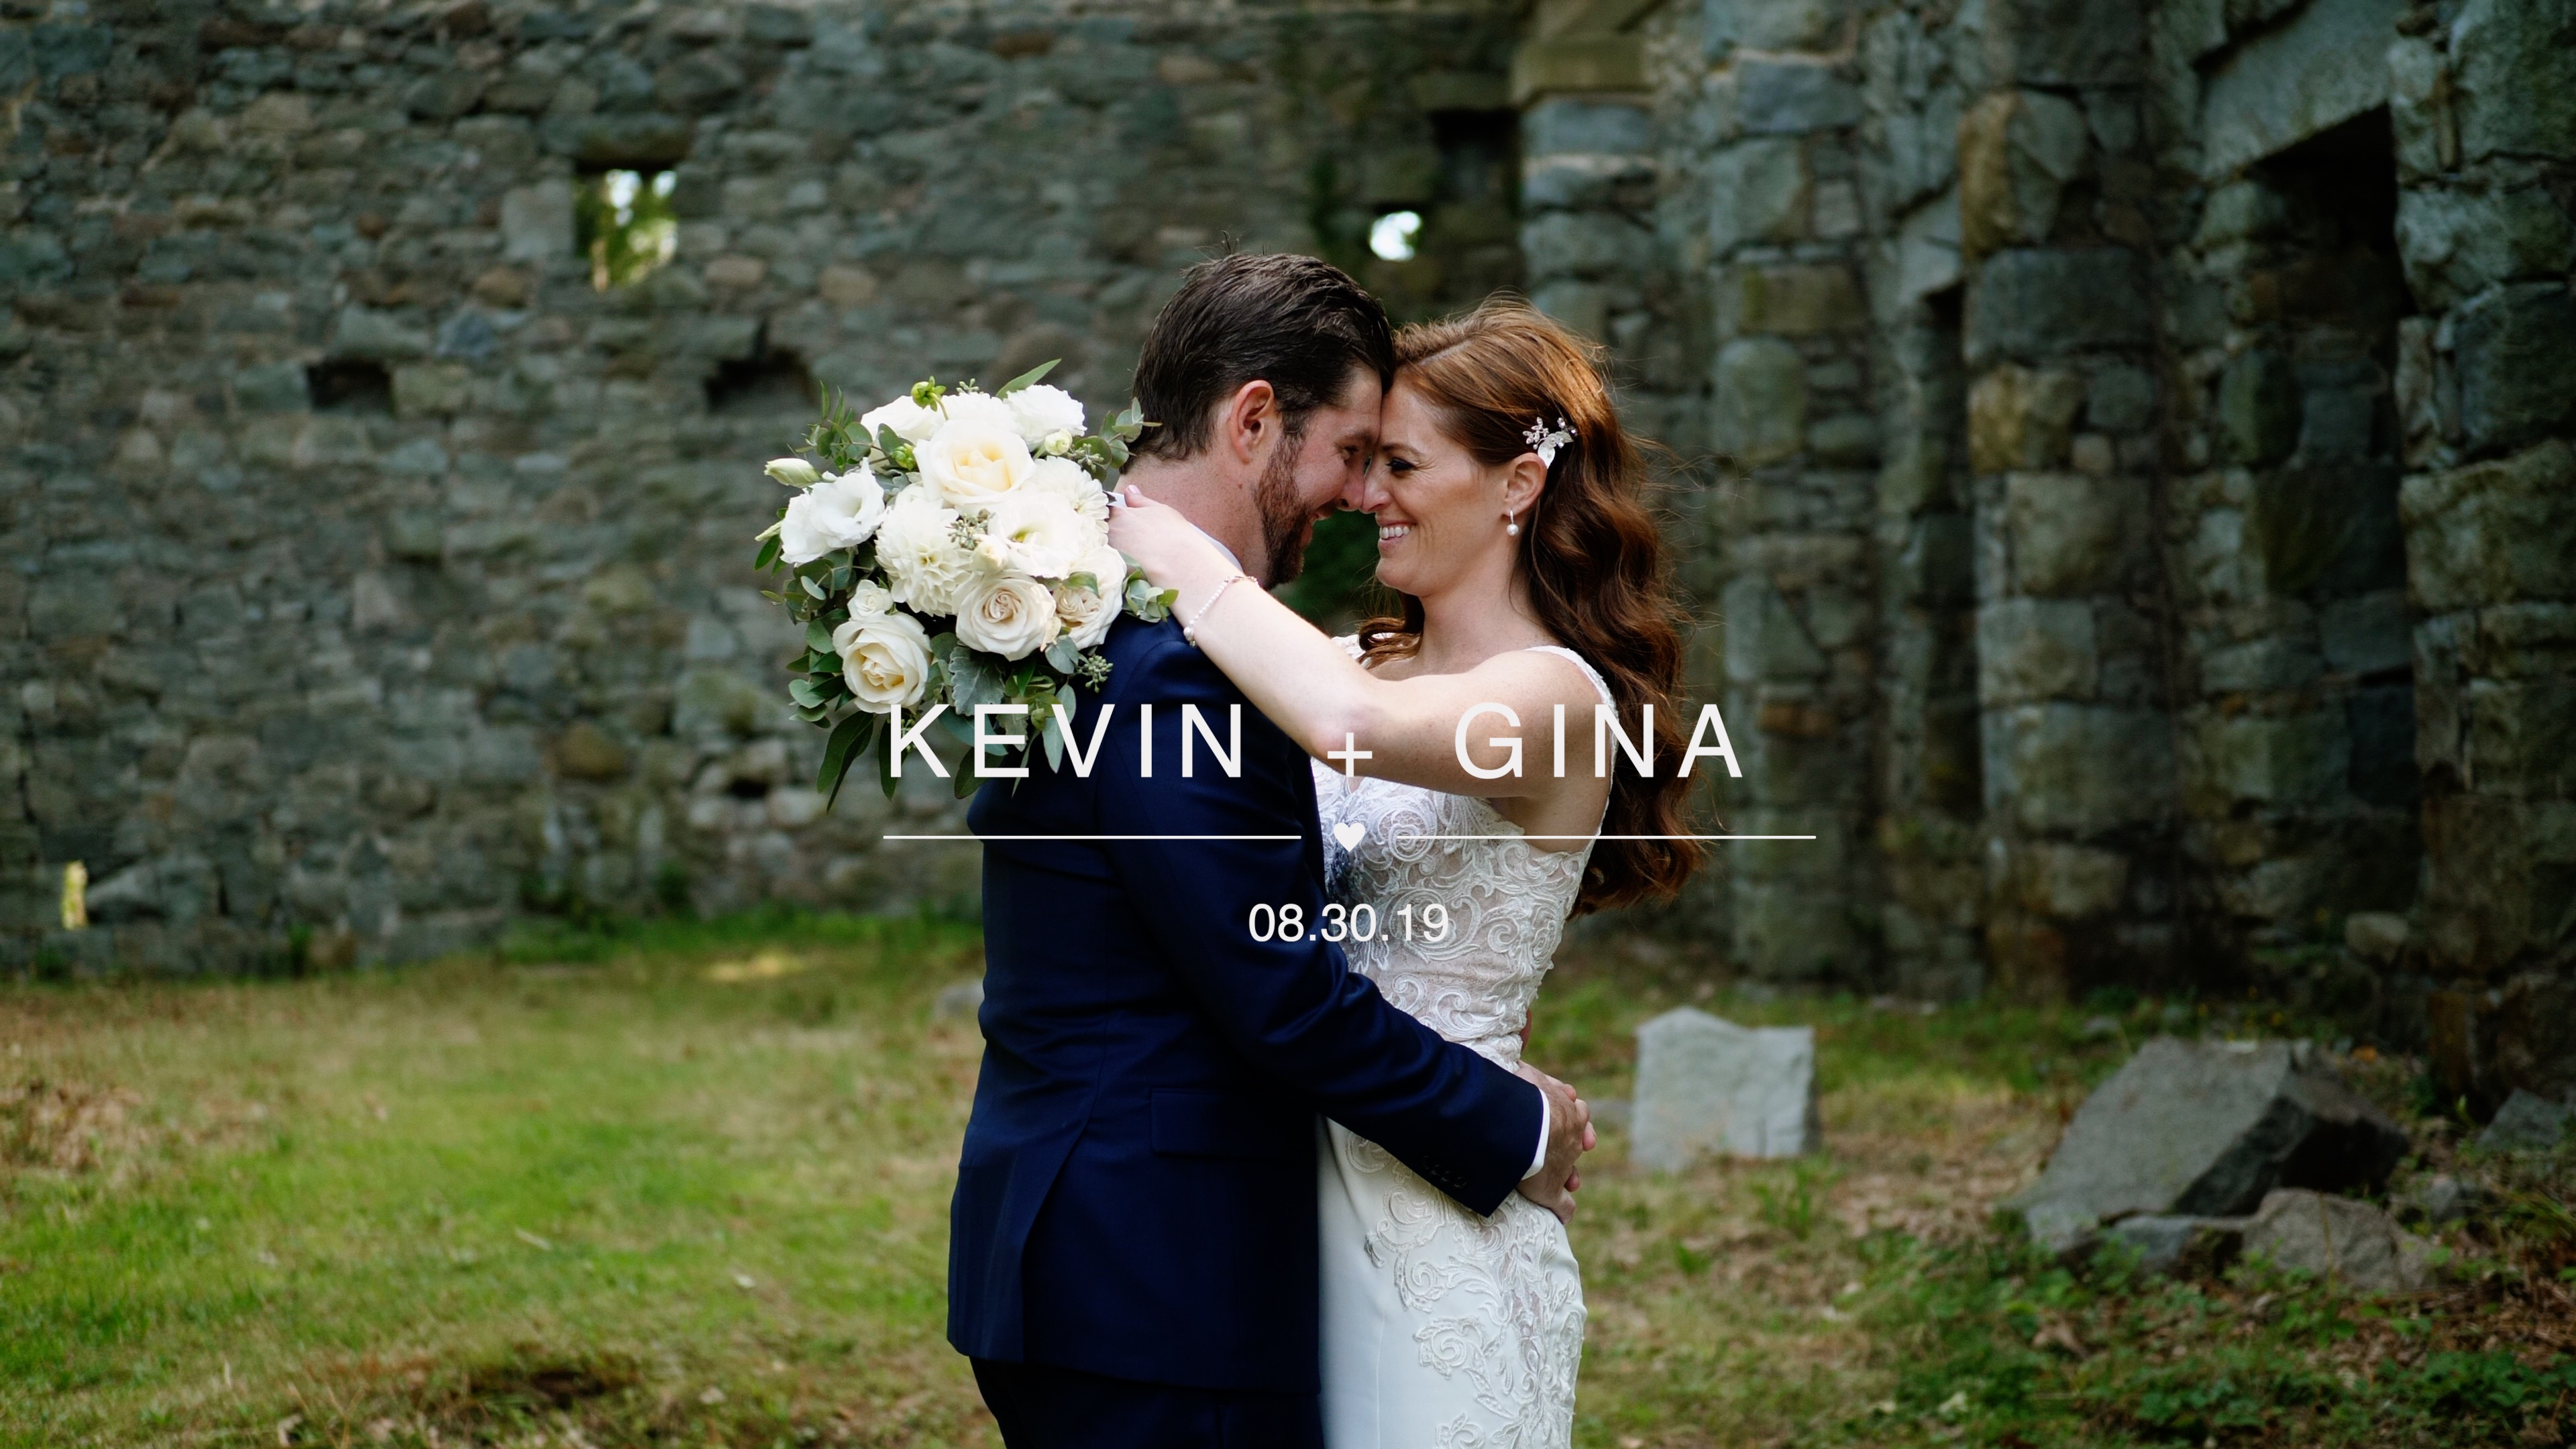 Kevin + Gina | Quincy, Massachusetts | Granite Links Golf Club